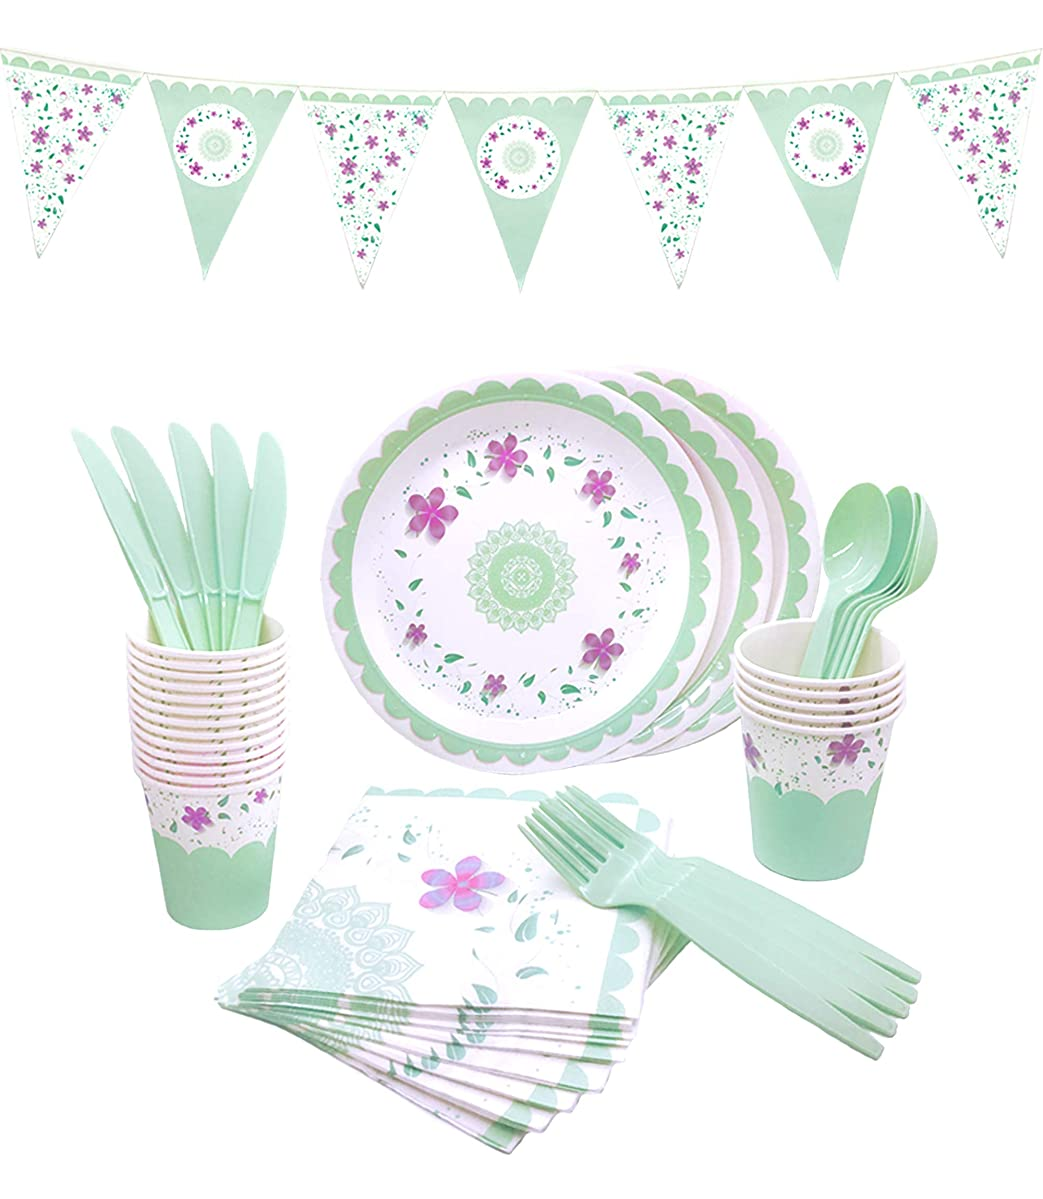 145 Piece Floral Party Supplies Set | Disposable Dinnerware Set | Services 24 - Includes Plastic Knives, Spoons, Forks, Paper Plates, Napkins, Cups, Banner | Perfect for Tea Party, Birthday, Wedding